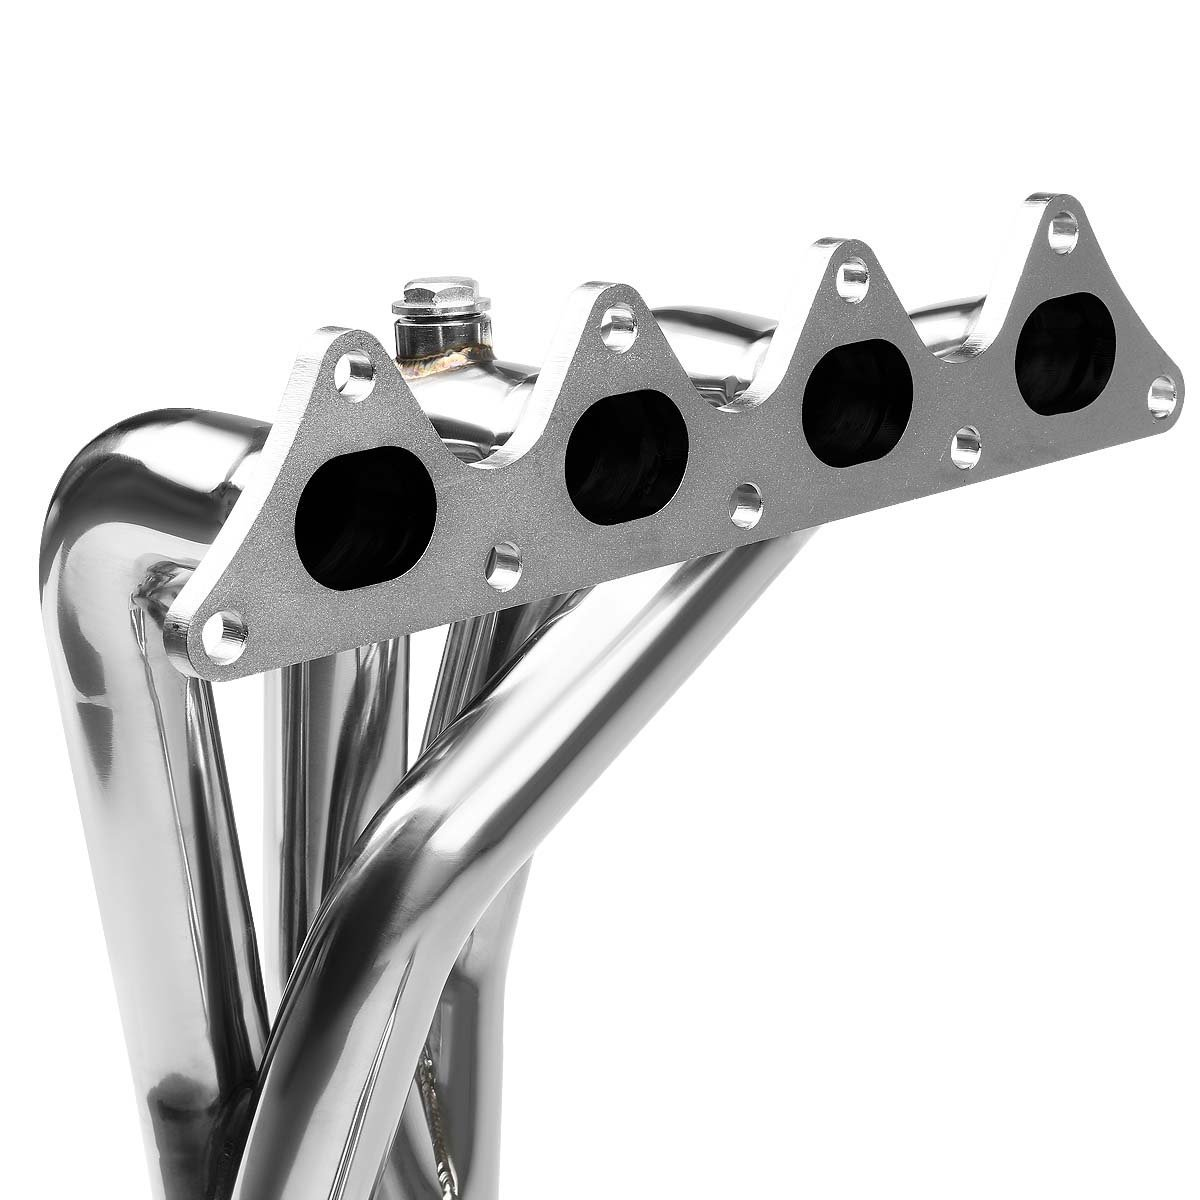 03 Lancer Exhaust Headers: 02-07 Mitsubishi Lancer 2.0L 4G94 Stainless Racing Exhaust